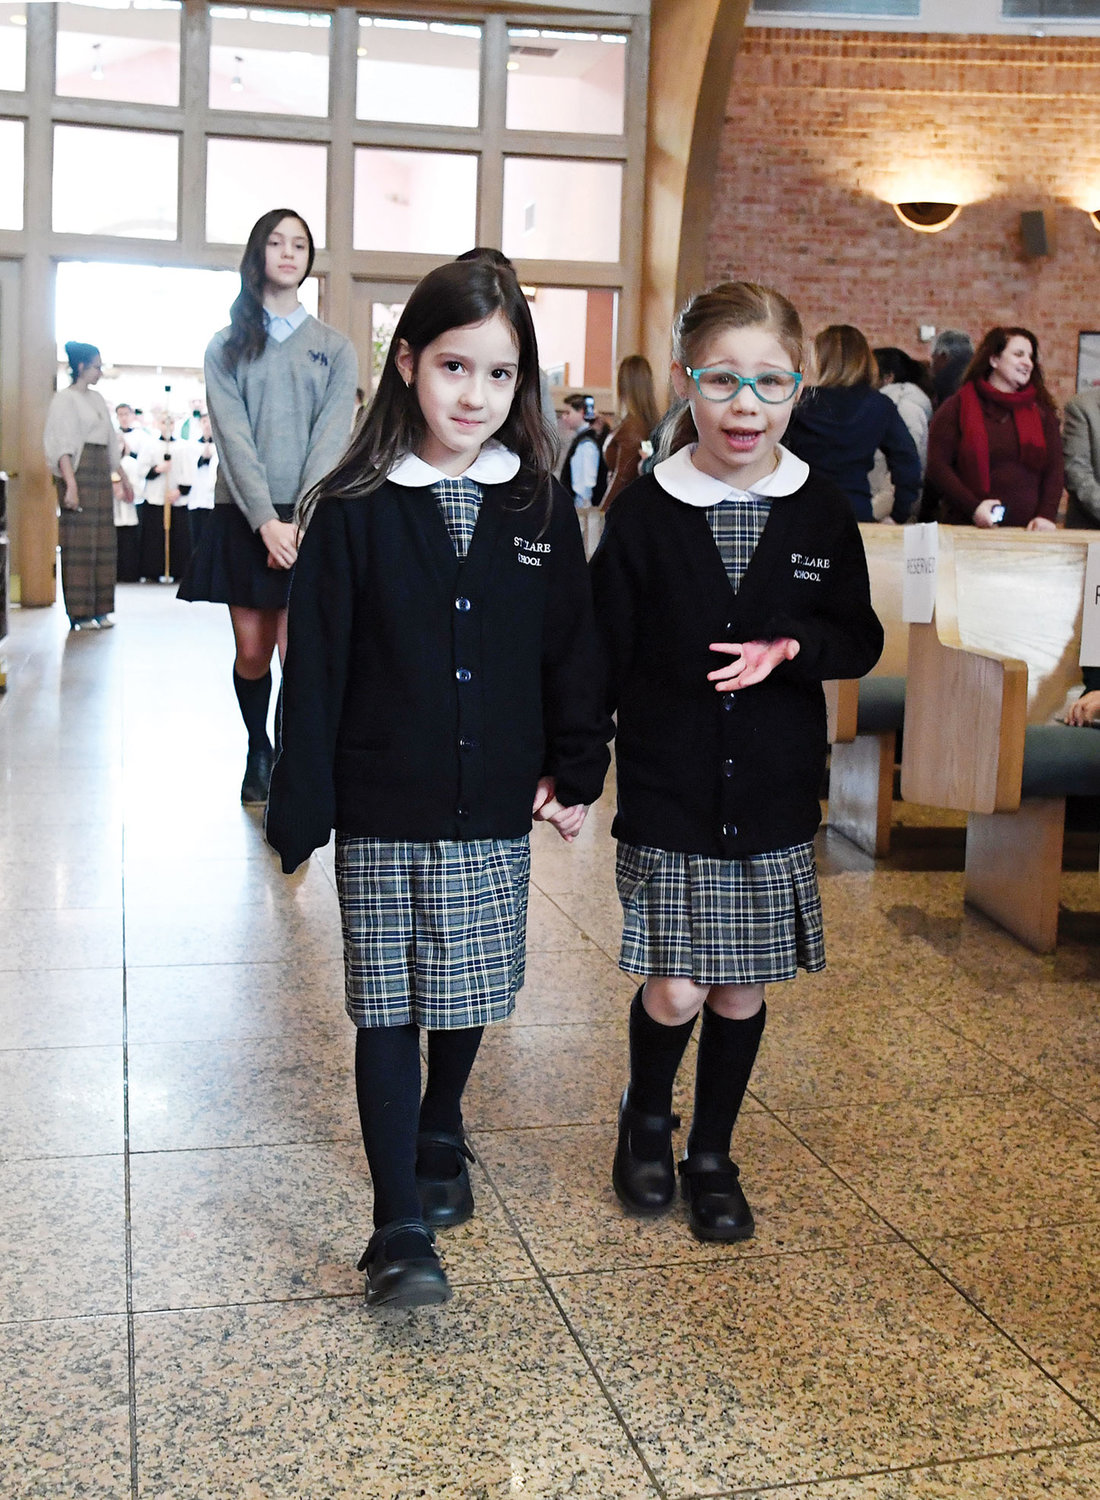 Emily Sciusco and Ella Ficchi, kindergarteners at St. Clare School, walk together in the procession at the start of Mass Jan. 27 at Holy Rosary Church to celebrate the start of National Catholic School Week on Staten Island.